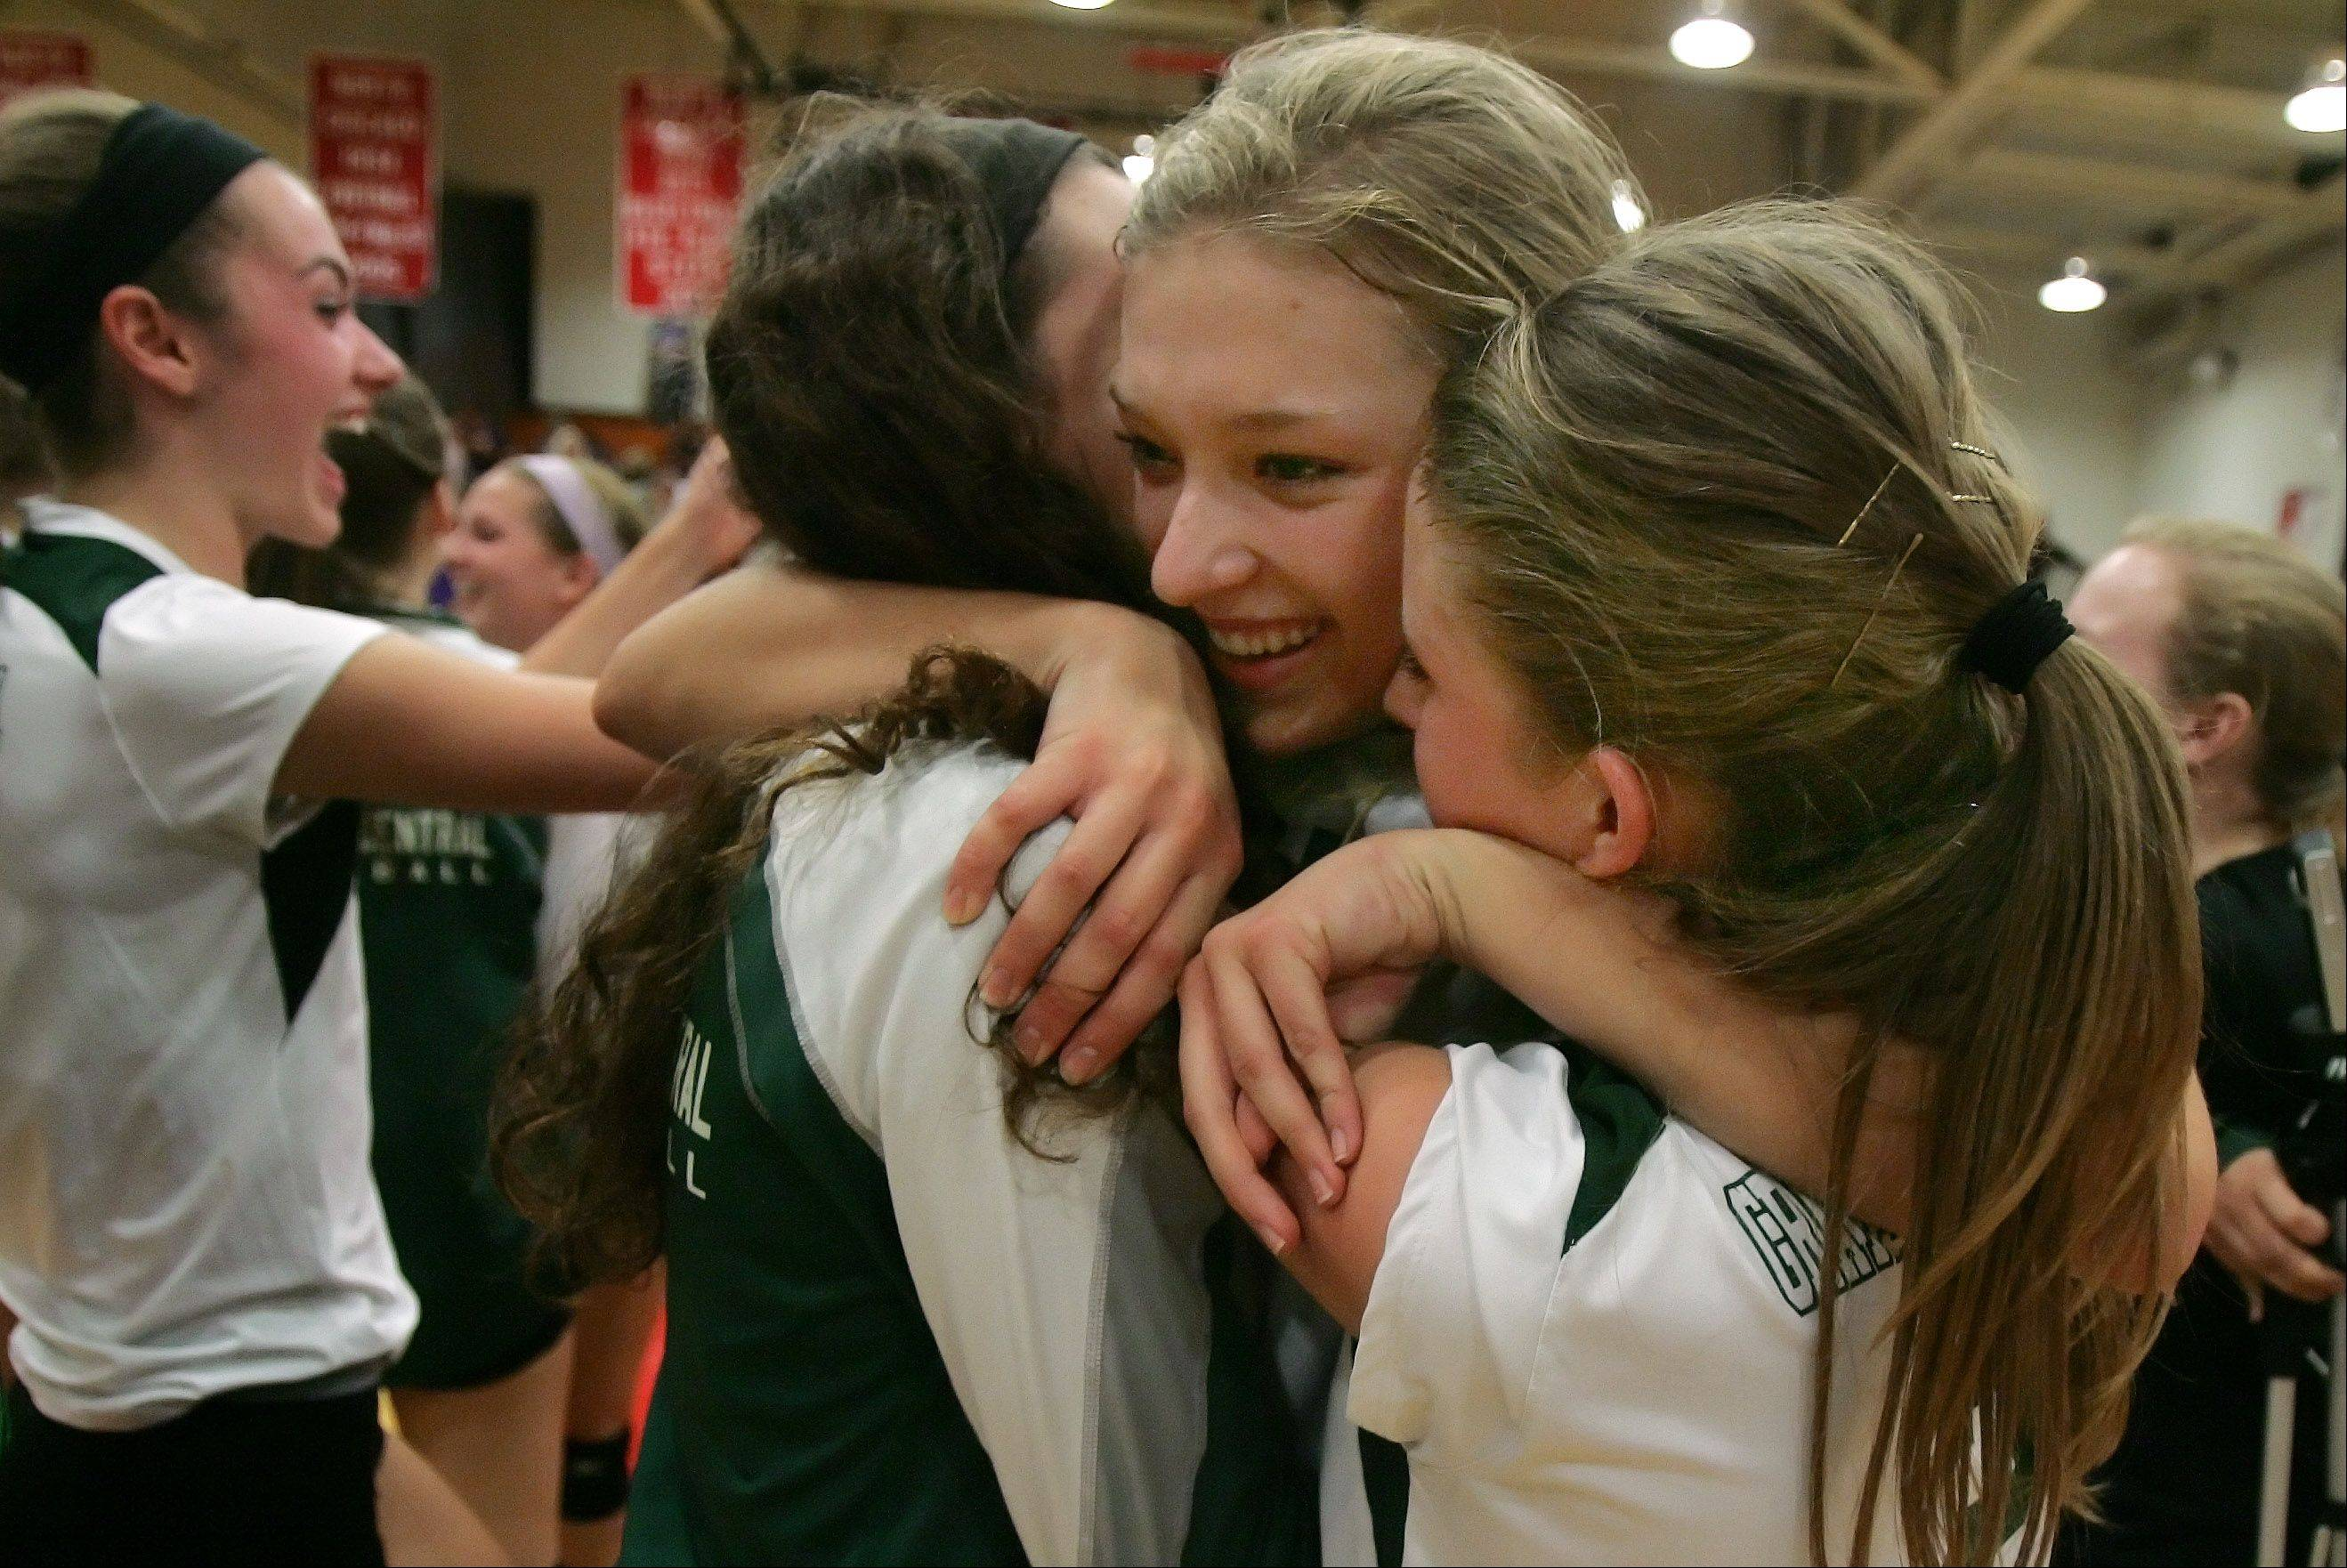 Grayslake Central's Lexi Beckman, center, hugs Anna Basten, left, and Anna Strickland after winning the Class 3A volleyball regional final Thursday against Wauconda in North Chicago.